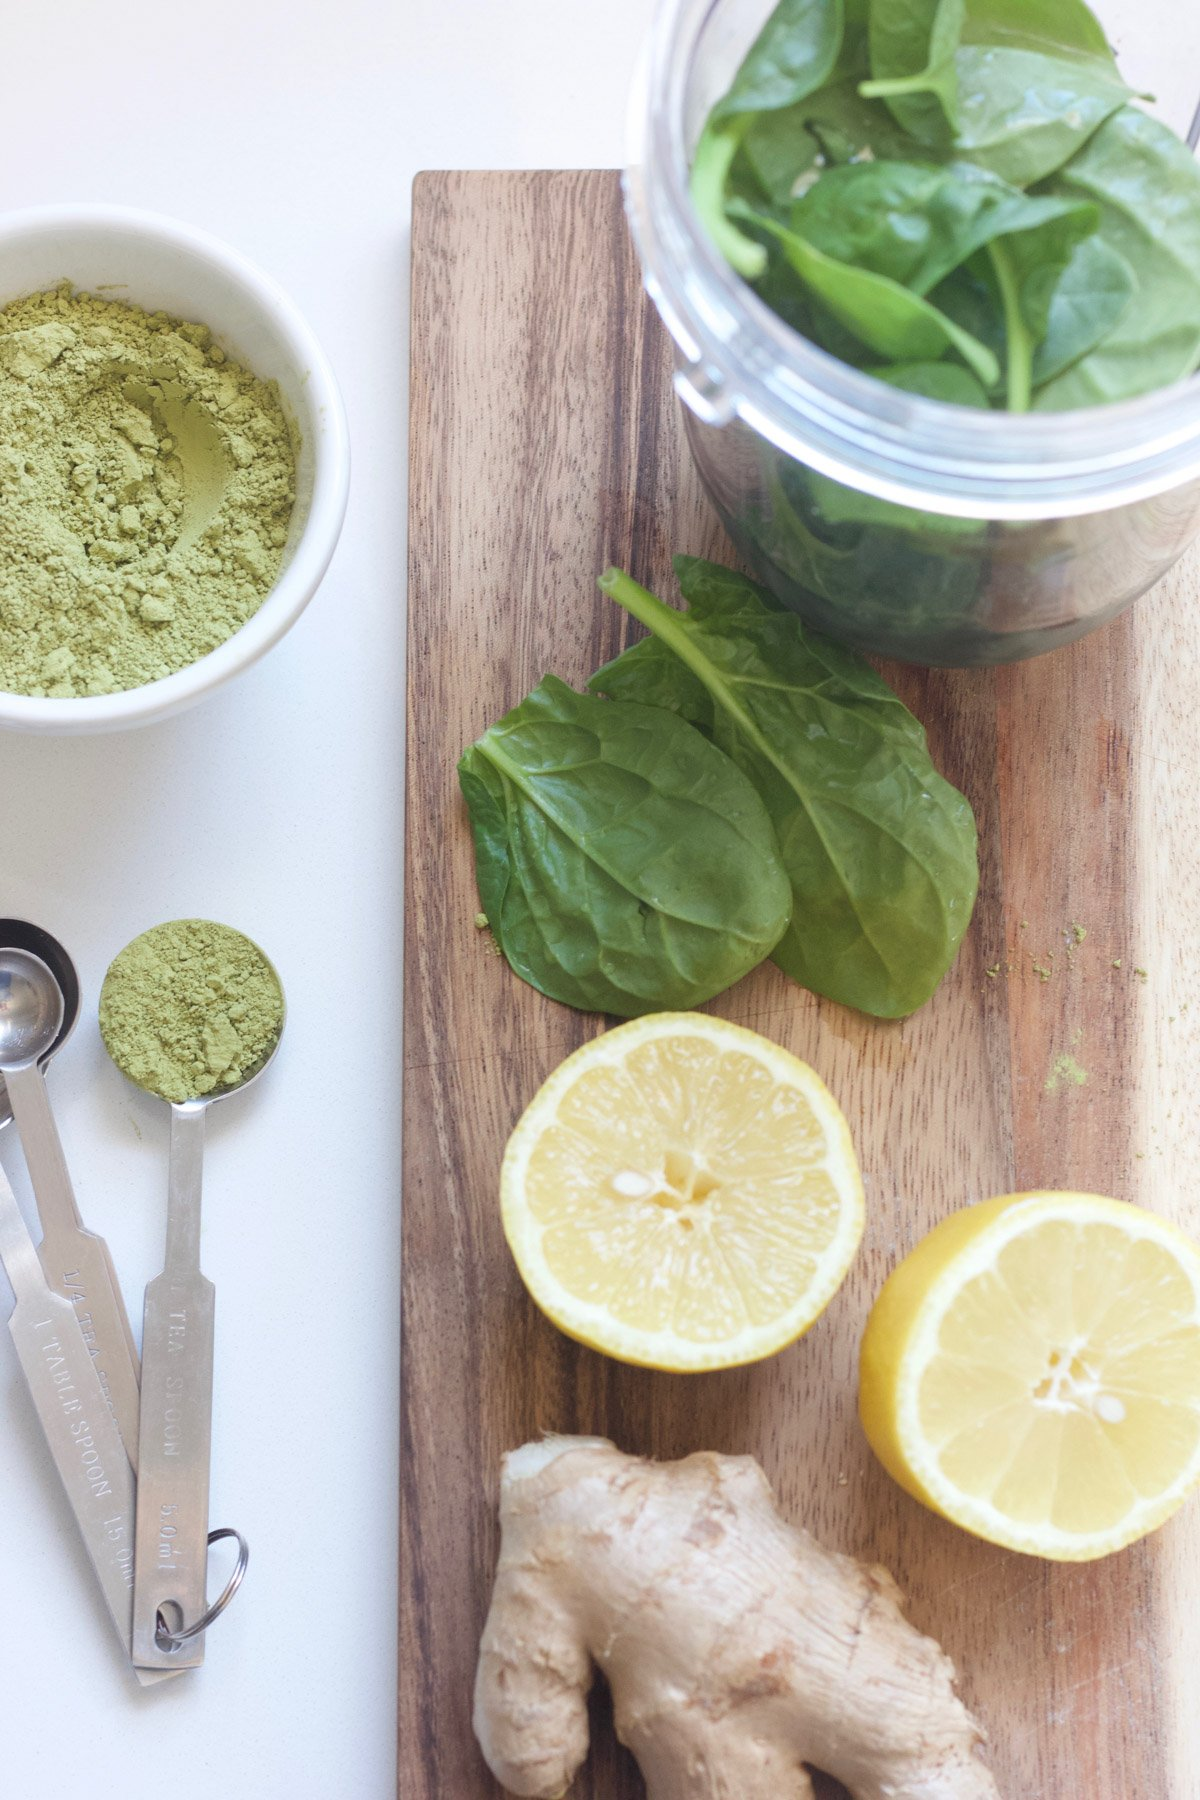 Green smoothie ingredients on a cutting board